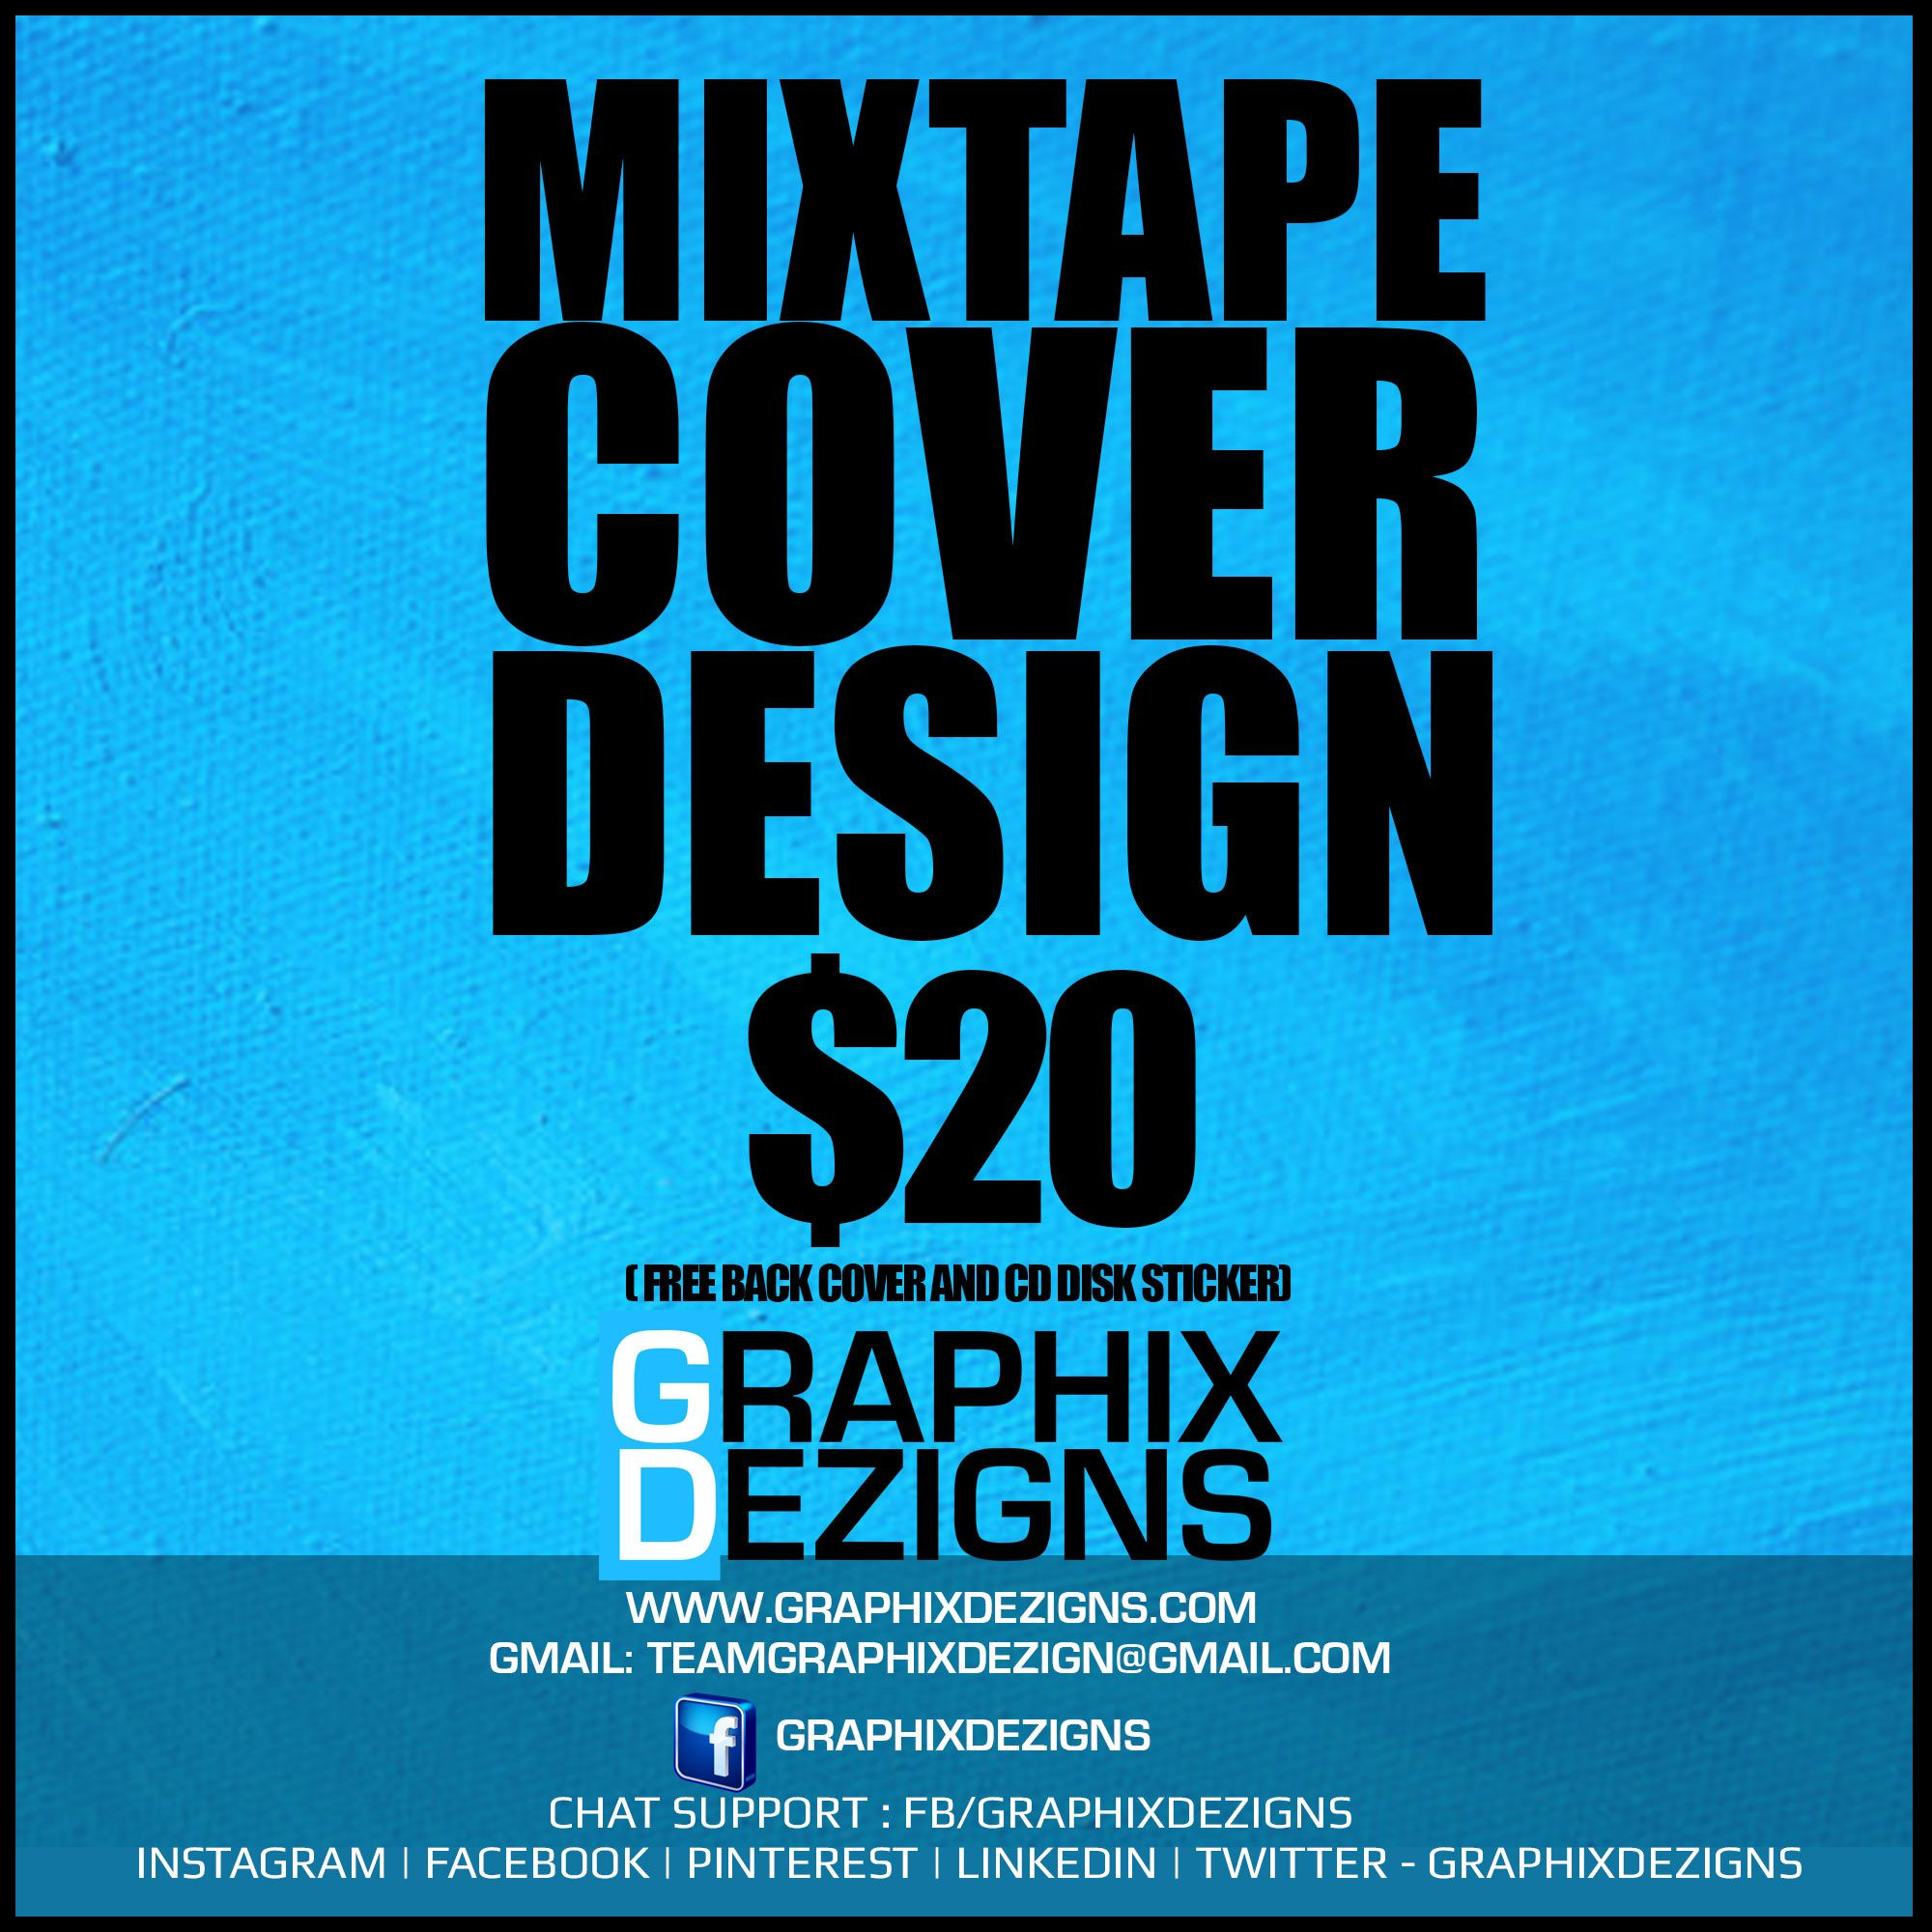 Poster design cost - High Quality Mixtape Cover Design For The Best Price Designed By Graphixdezigns Cd Cover Cost